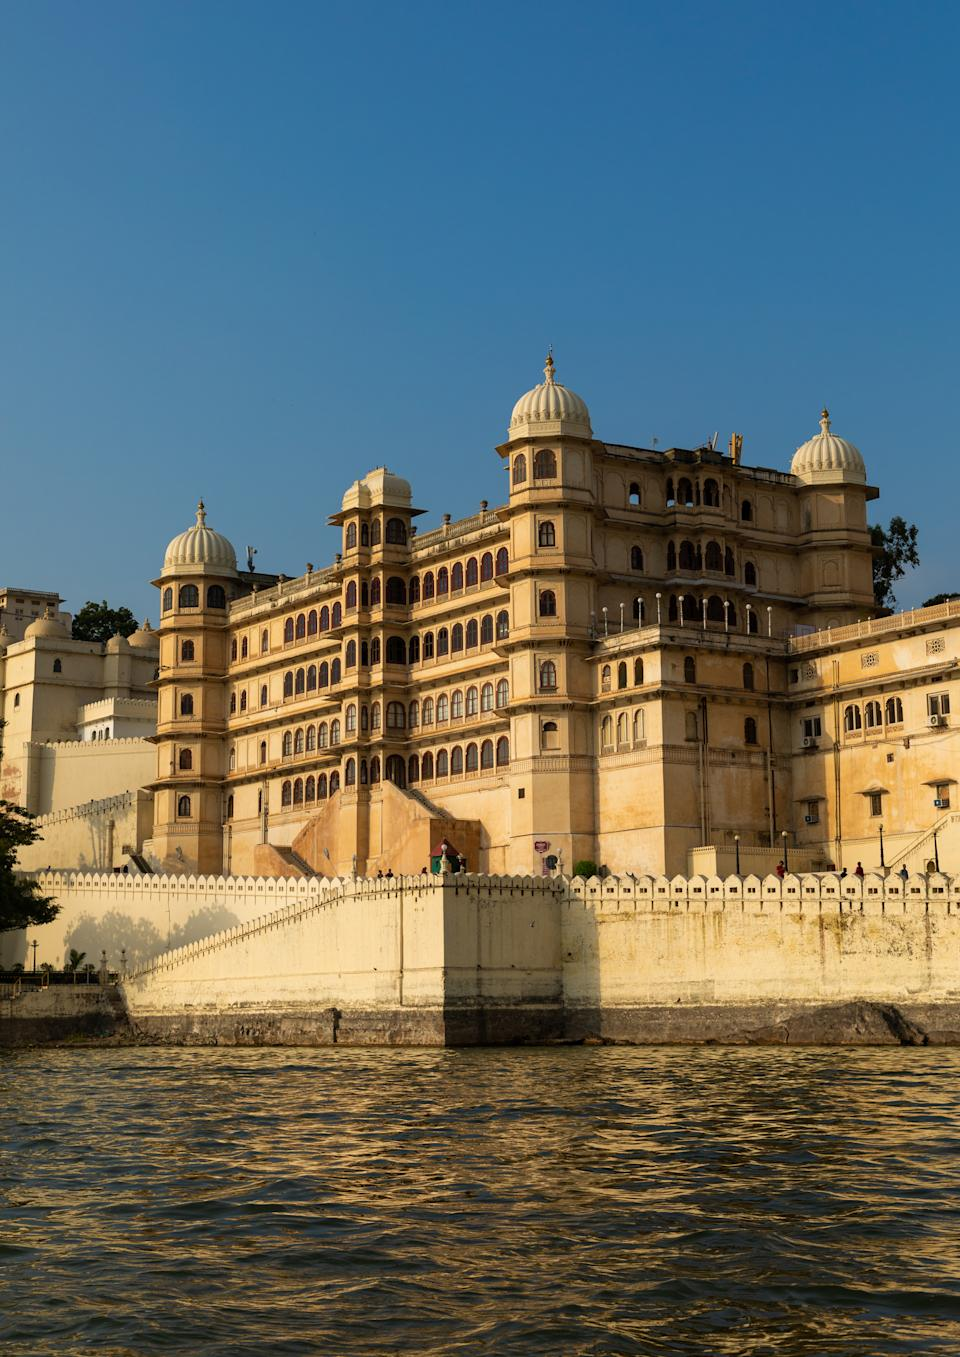 It was built in a flamboyant style and is considered the largest of its type in the state of Rajasthan.